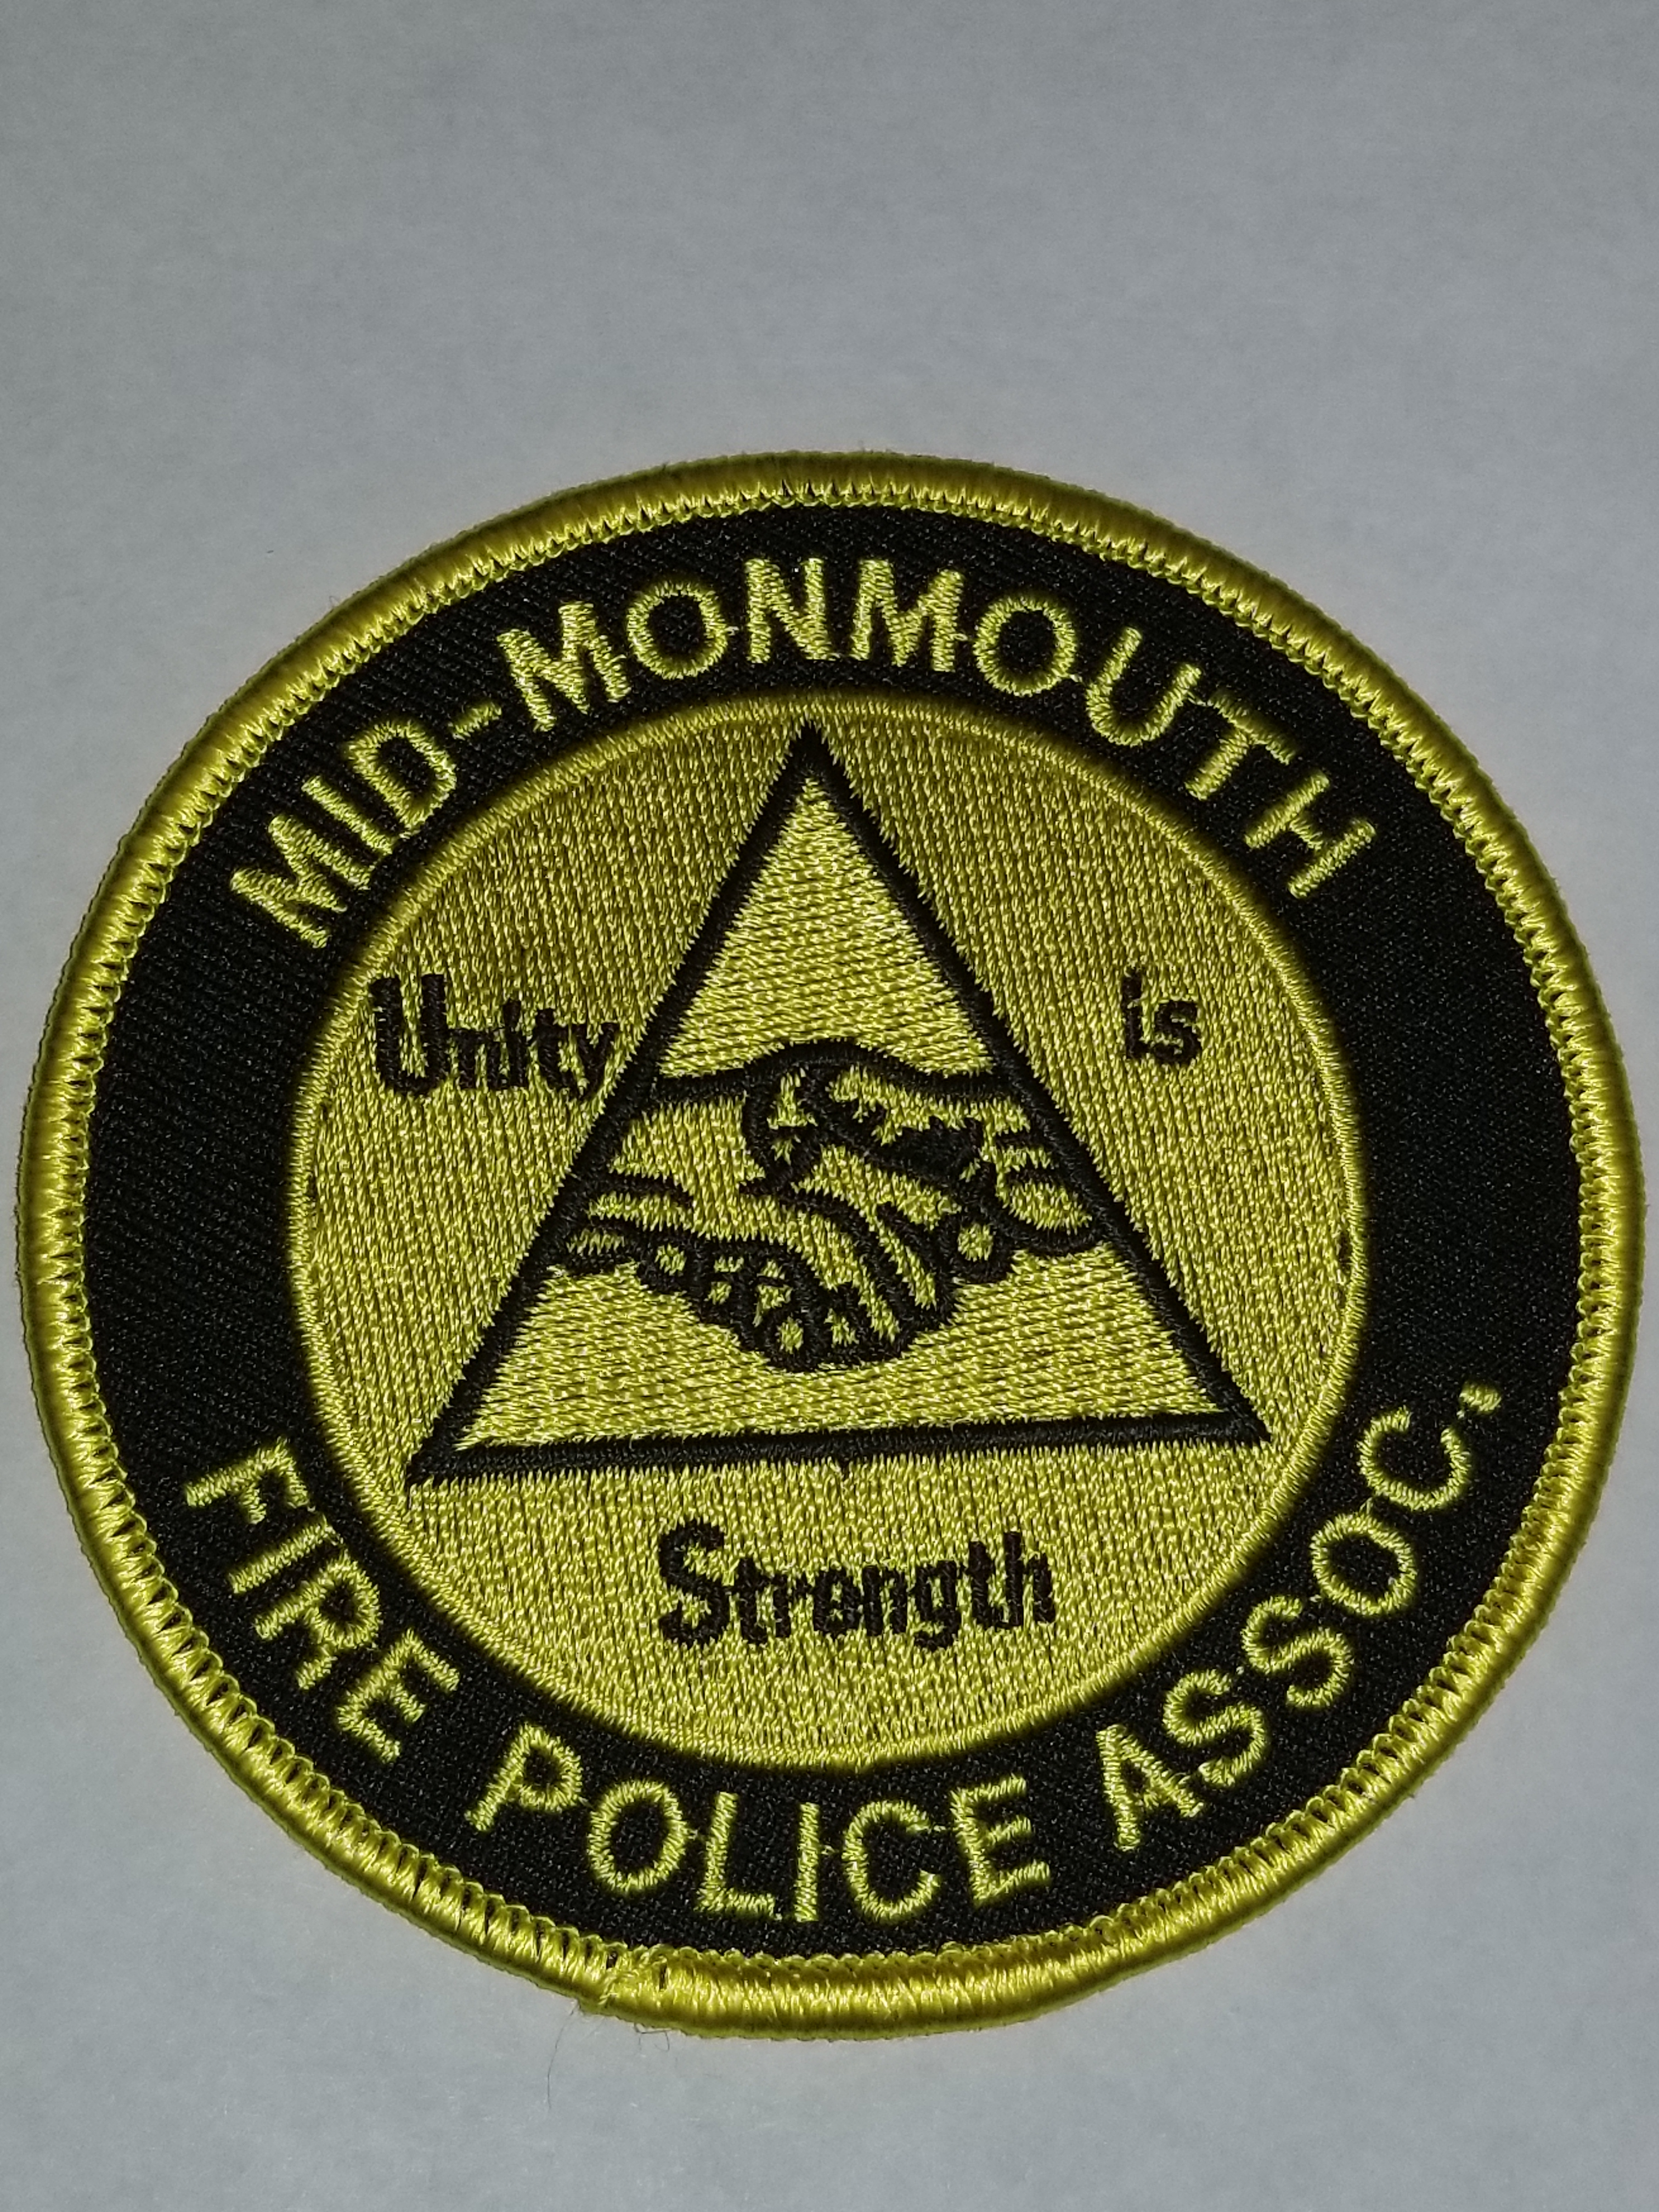 Mid-Monmouth Fire Police Association NJ